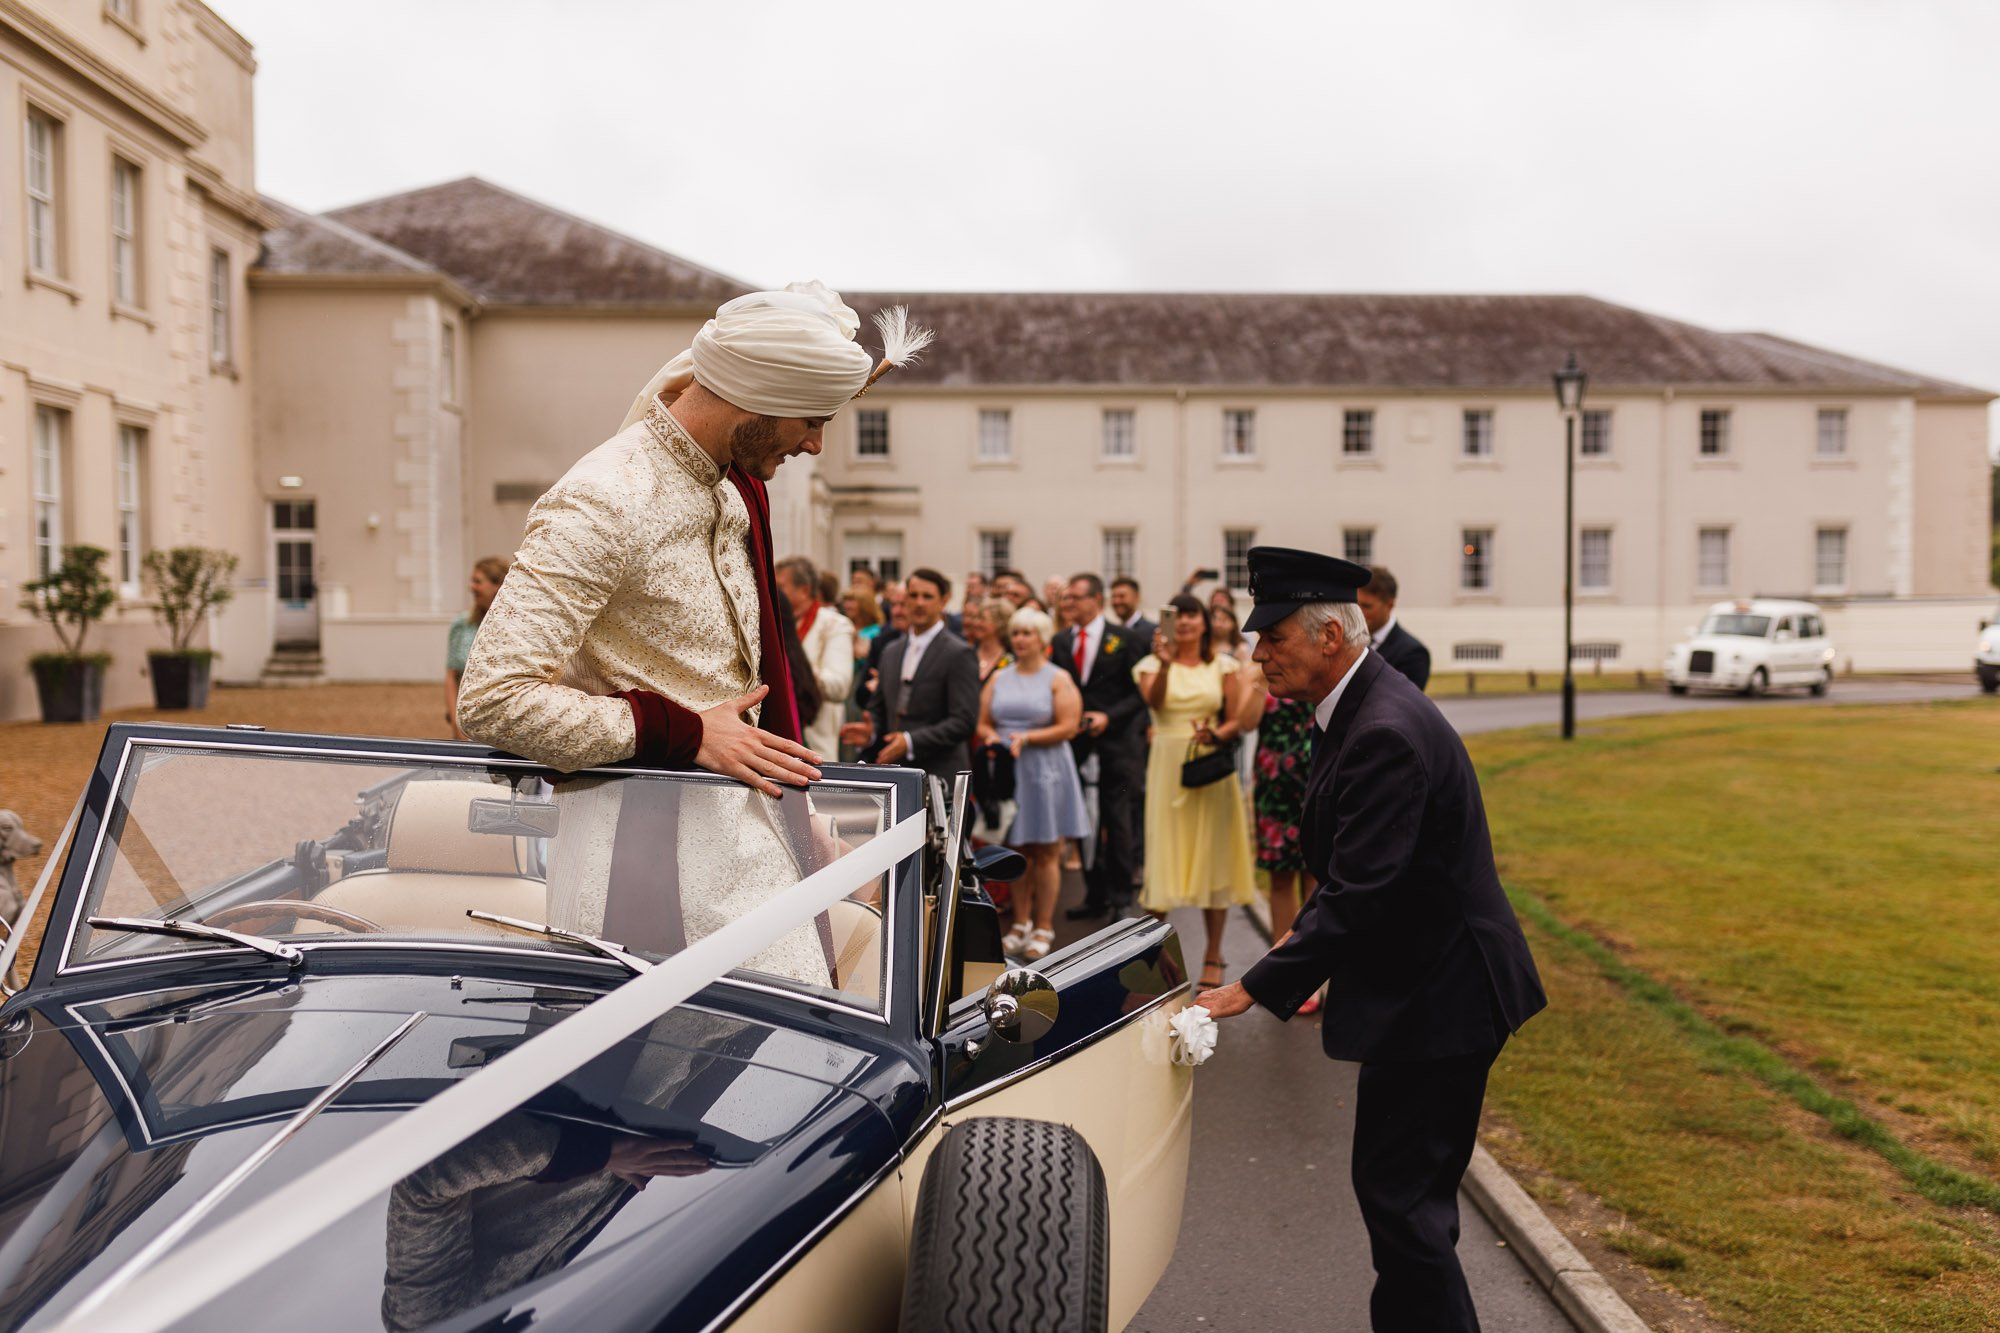 De Vere Wokefield Estate, Asian wedding photographer, grooms entrance, grooms arrival, vintage car